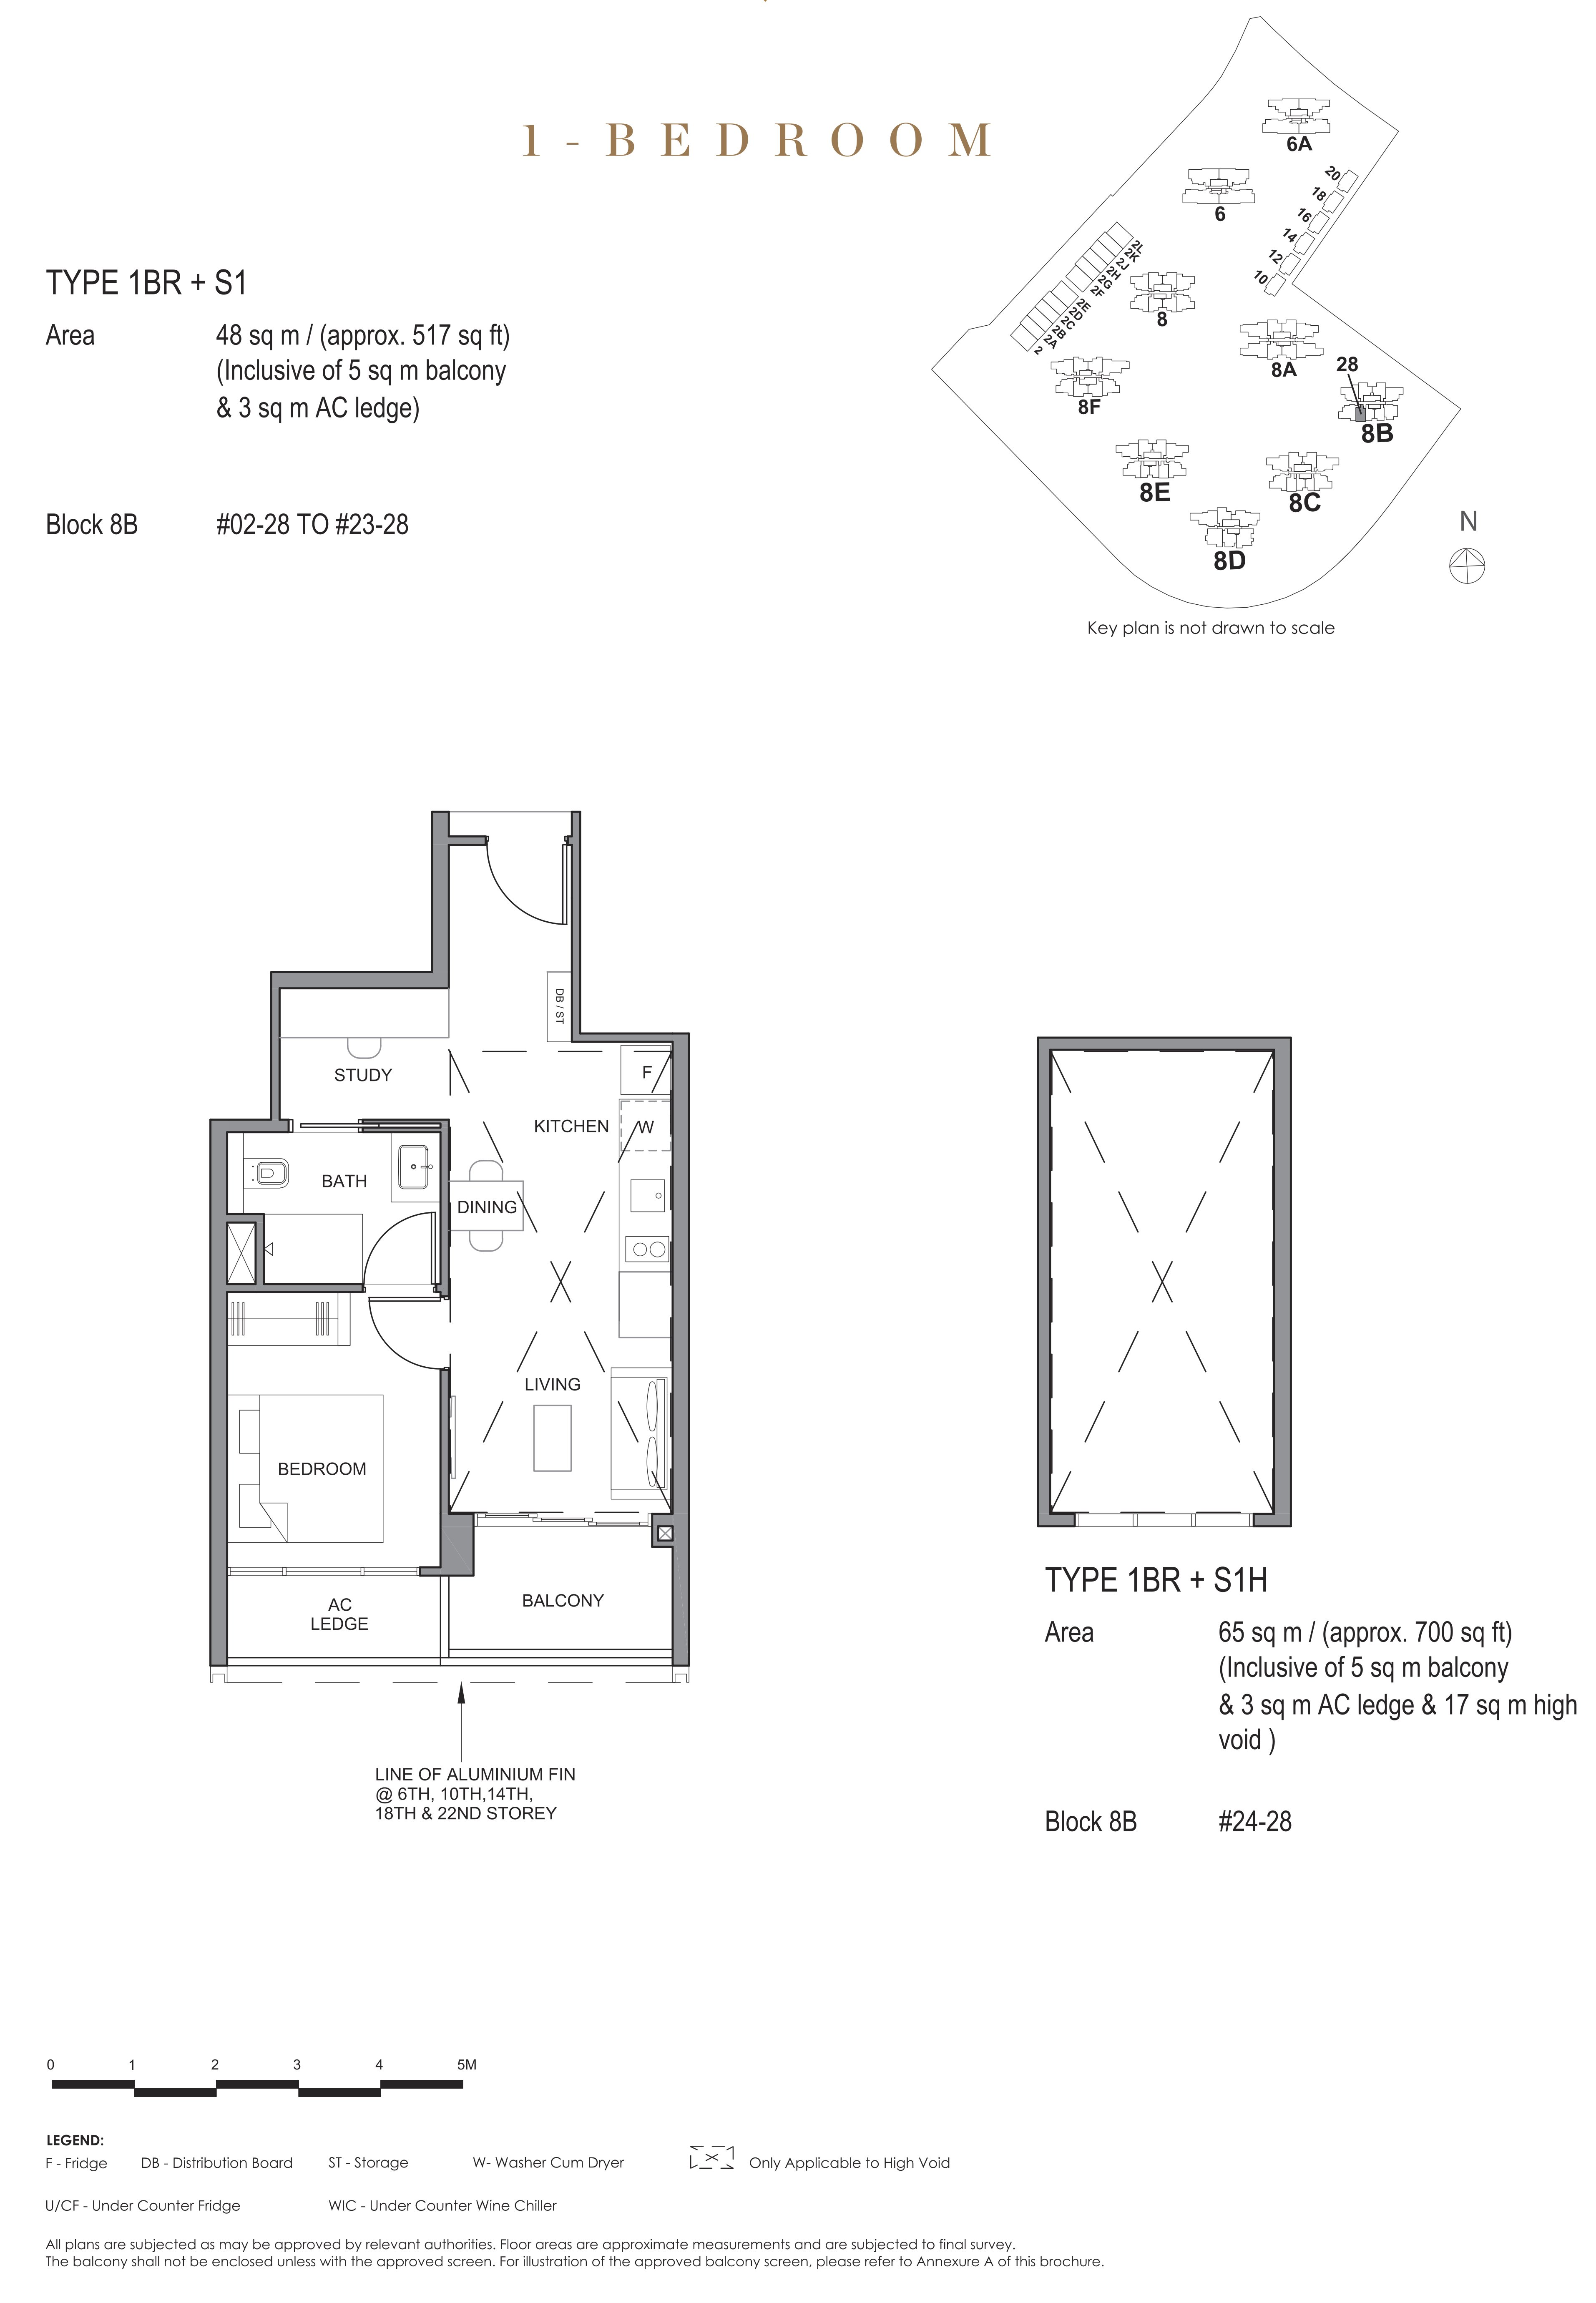 Parc Clematis 锦泰门第 contemporary 1 bedroom 1卧房-书房 1 BR-S1